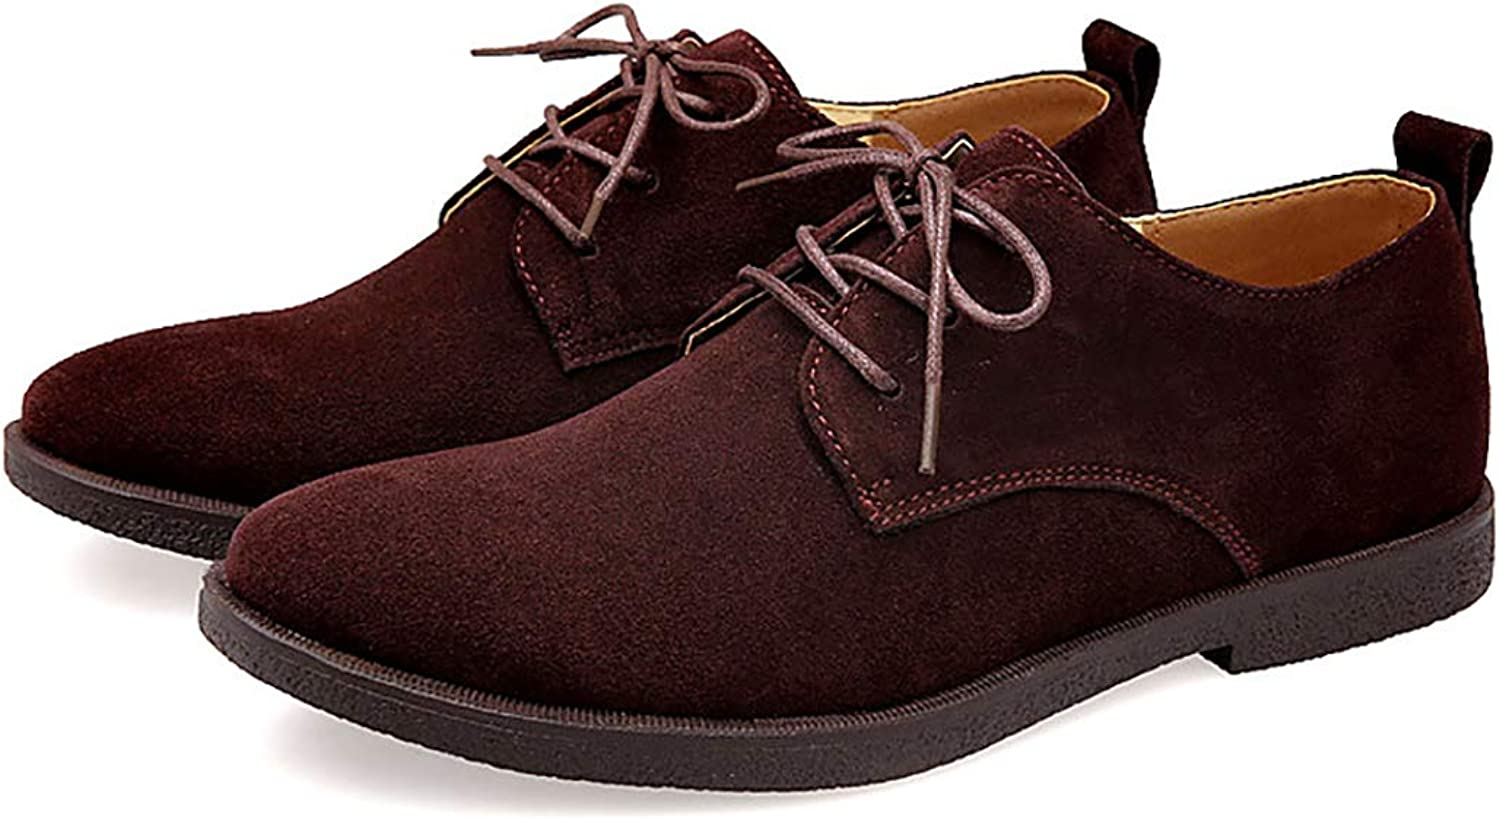 Men's shoes Spring Fashion Trend Men Casual shoes Scrub Suede shoes Retro Small Size Oversized Size